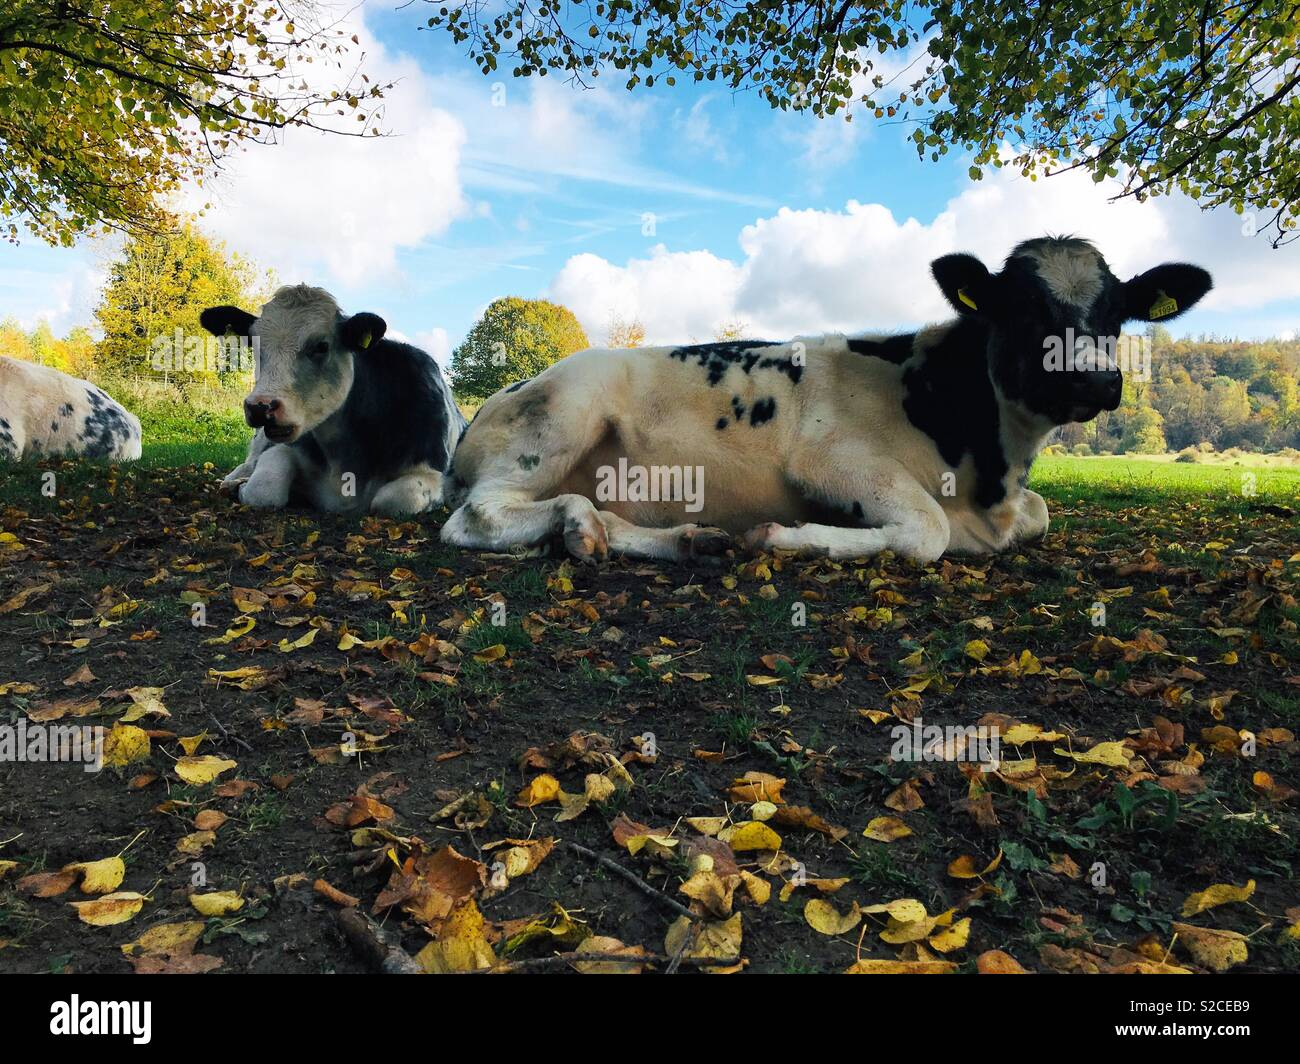 Cows snoozing in the sunshine in Hertfordshire - Stock Image